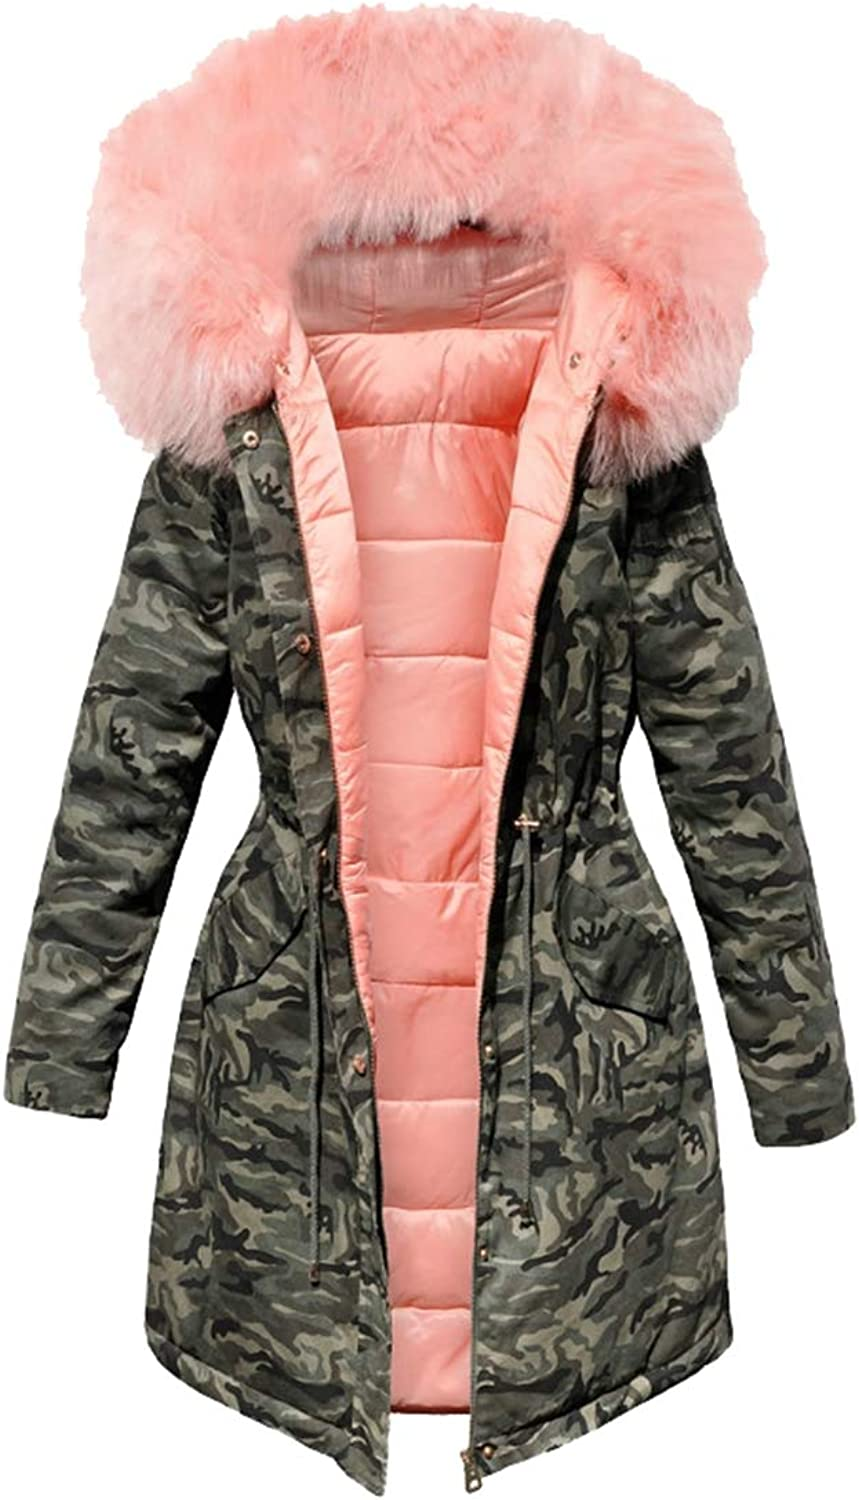 Esast Womens Parka Faux Fur Collar Camo Print Jacket with Hooded Down Jacket